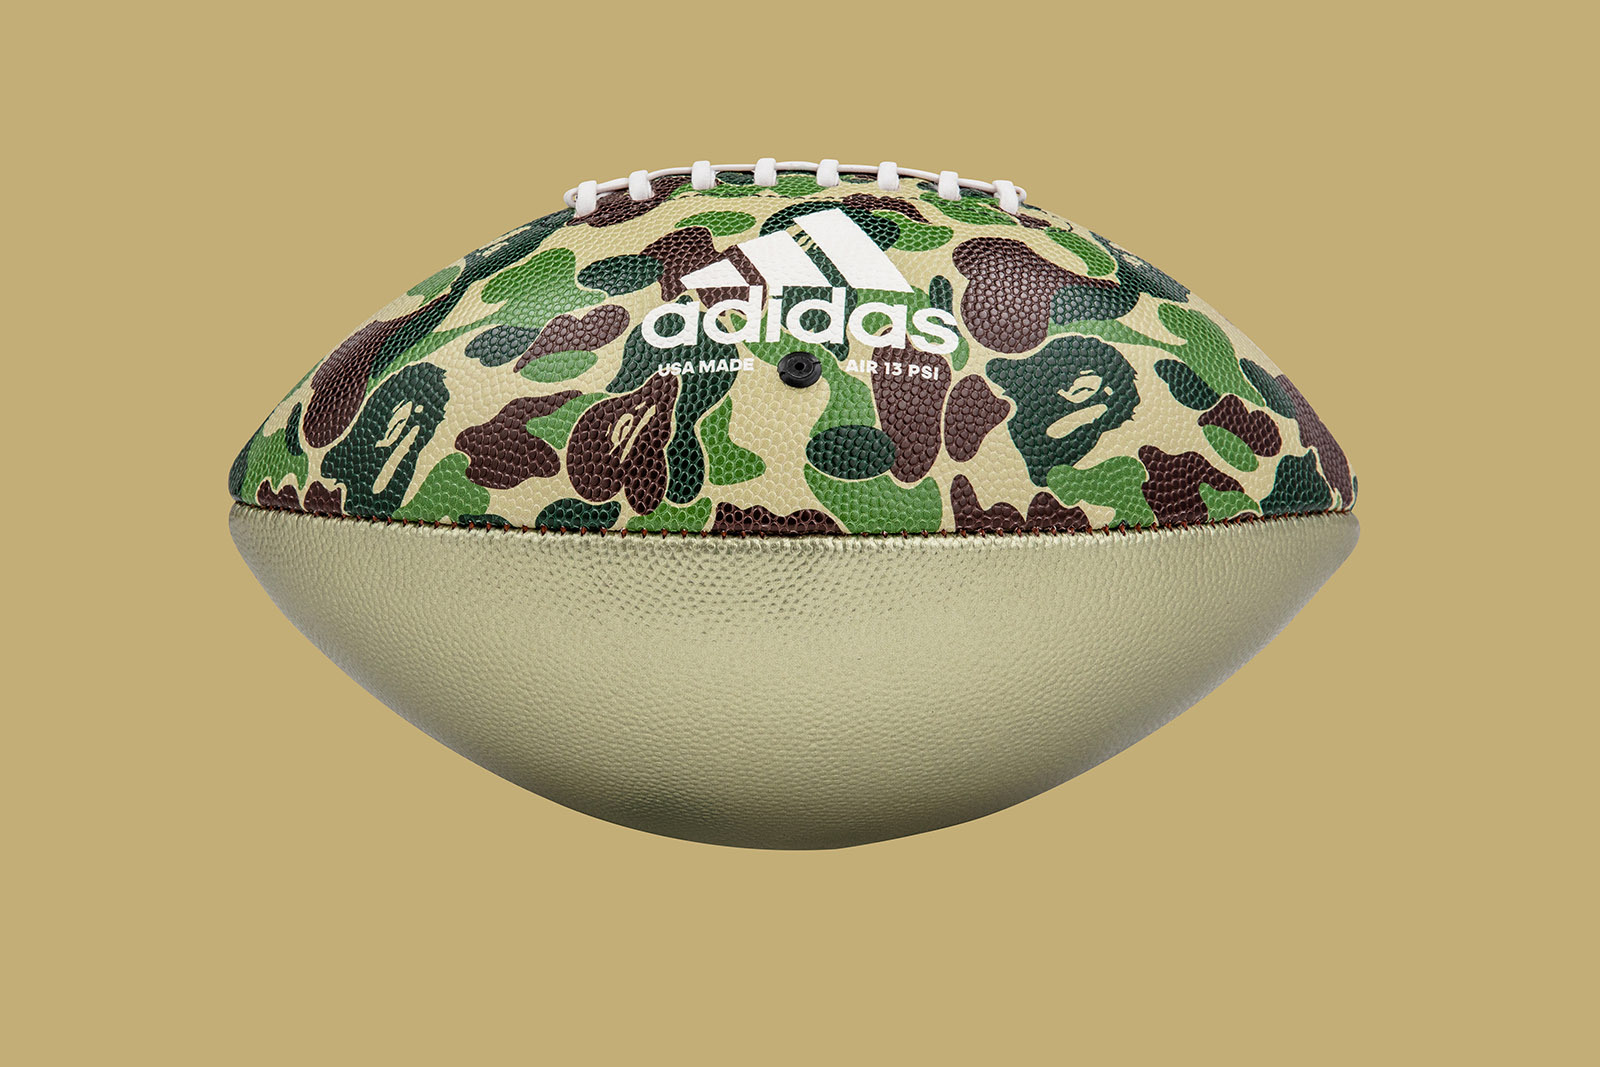 Adidas x BAPE Launch Limited Edition Capsule Collection